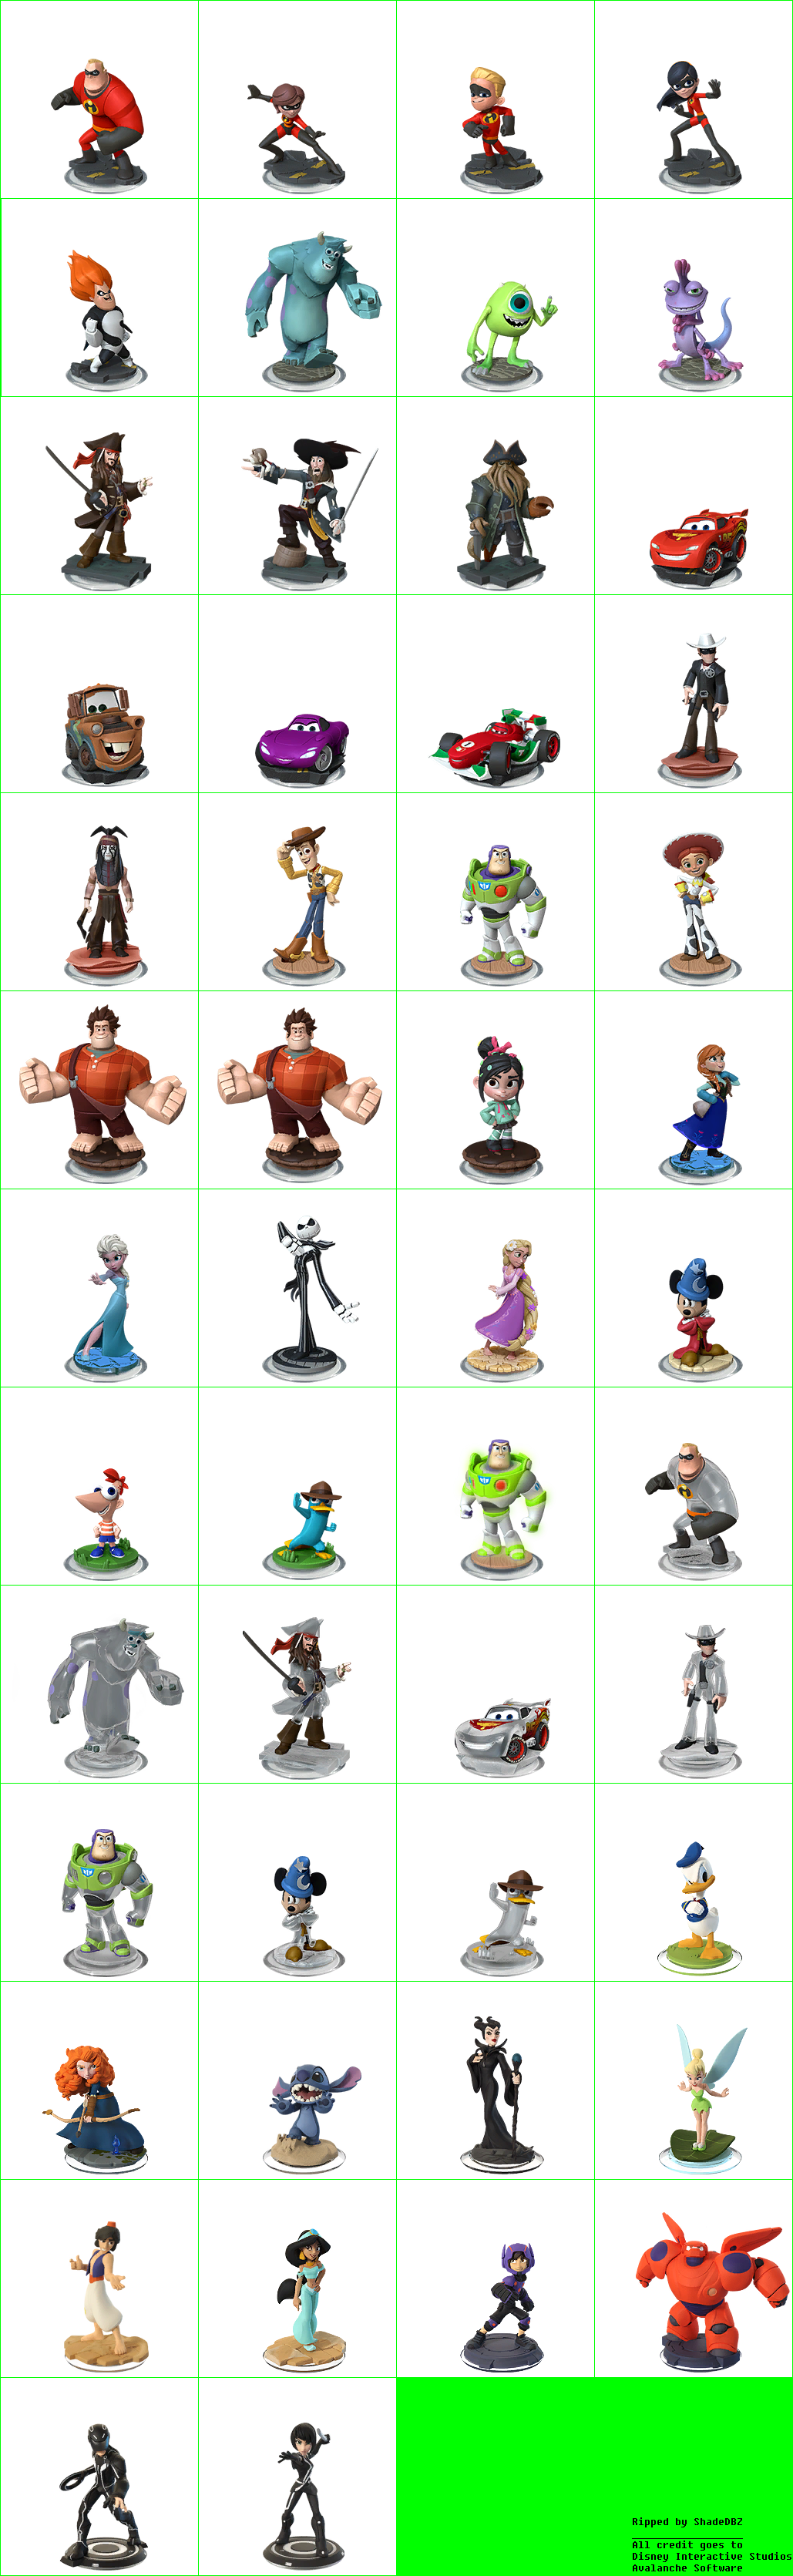 Disney Infinity 2.0 Edition: Marvel Super Heroes - Disney Character Previews (Small)